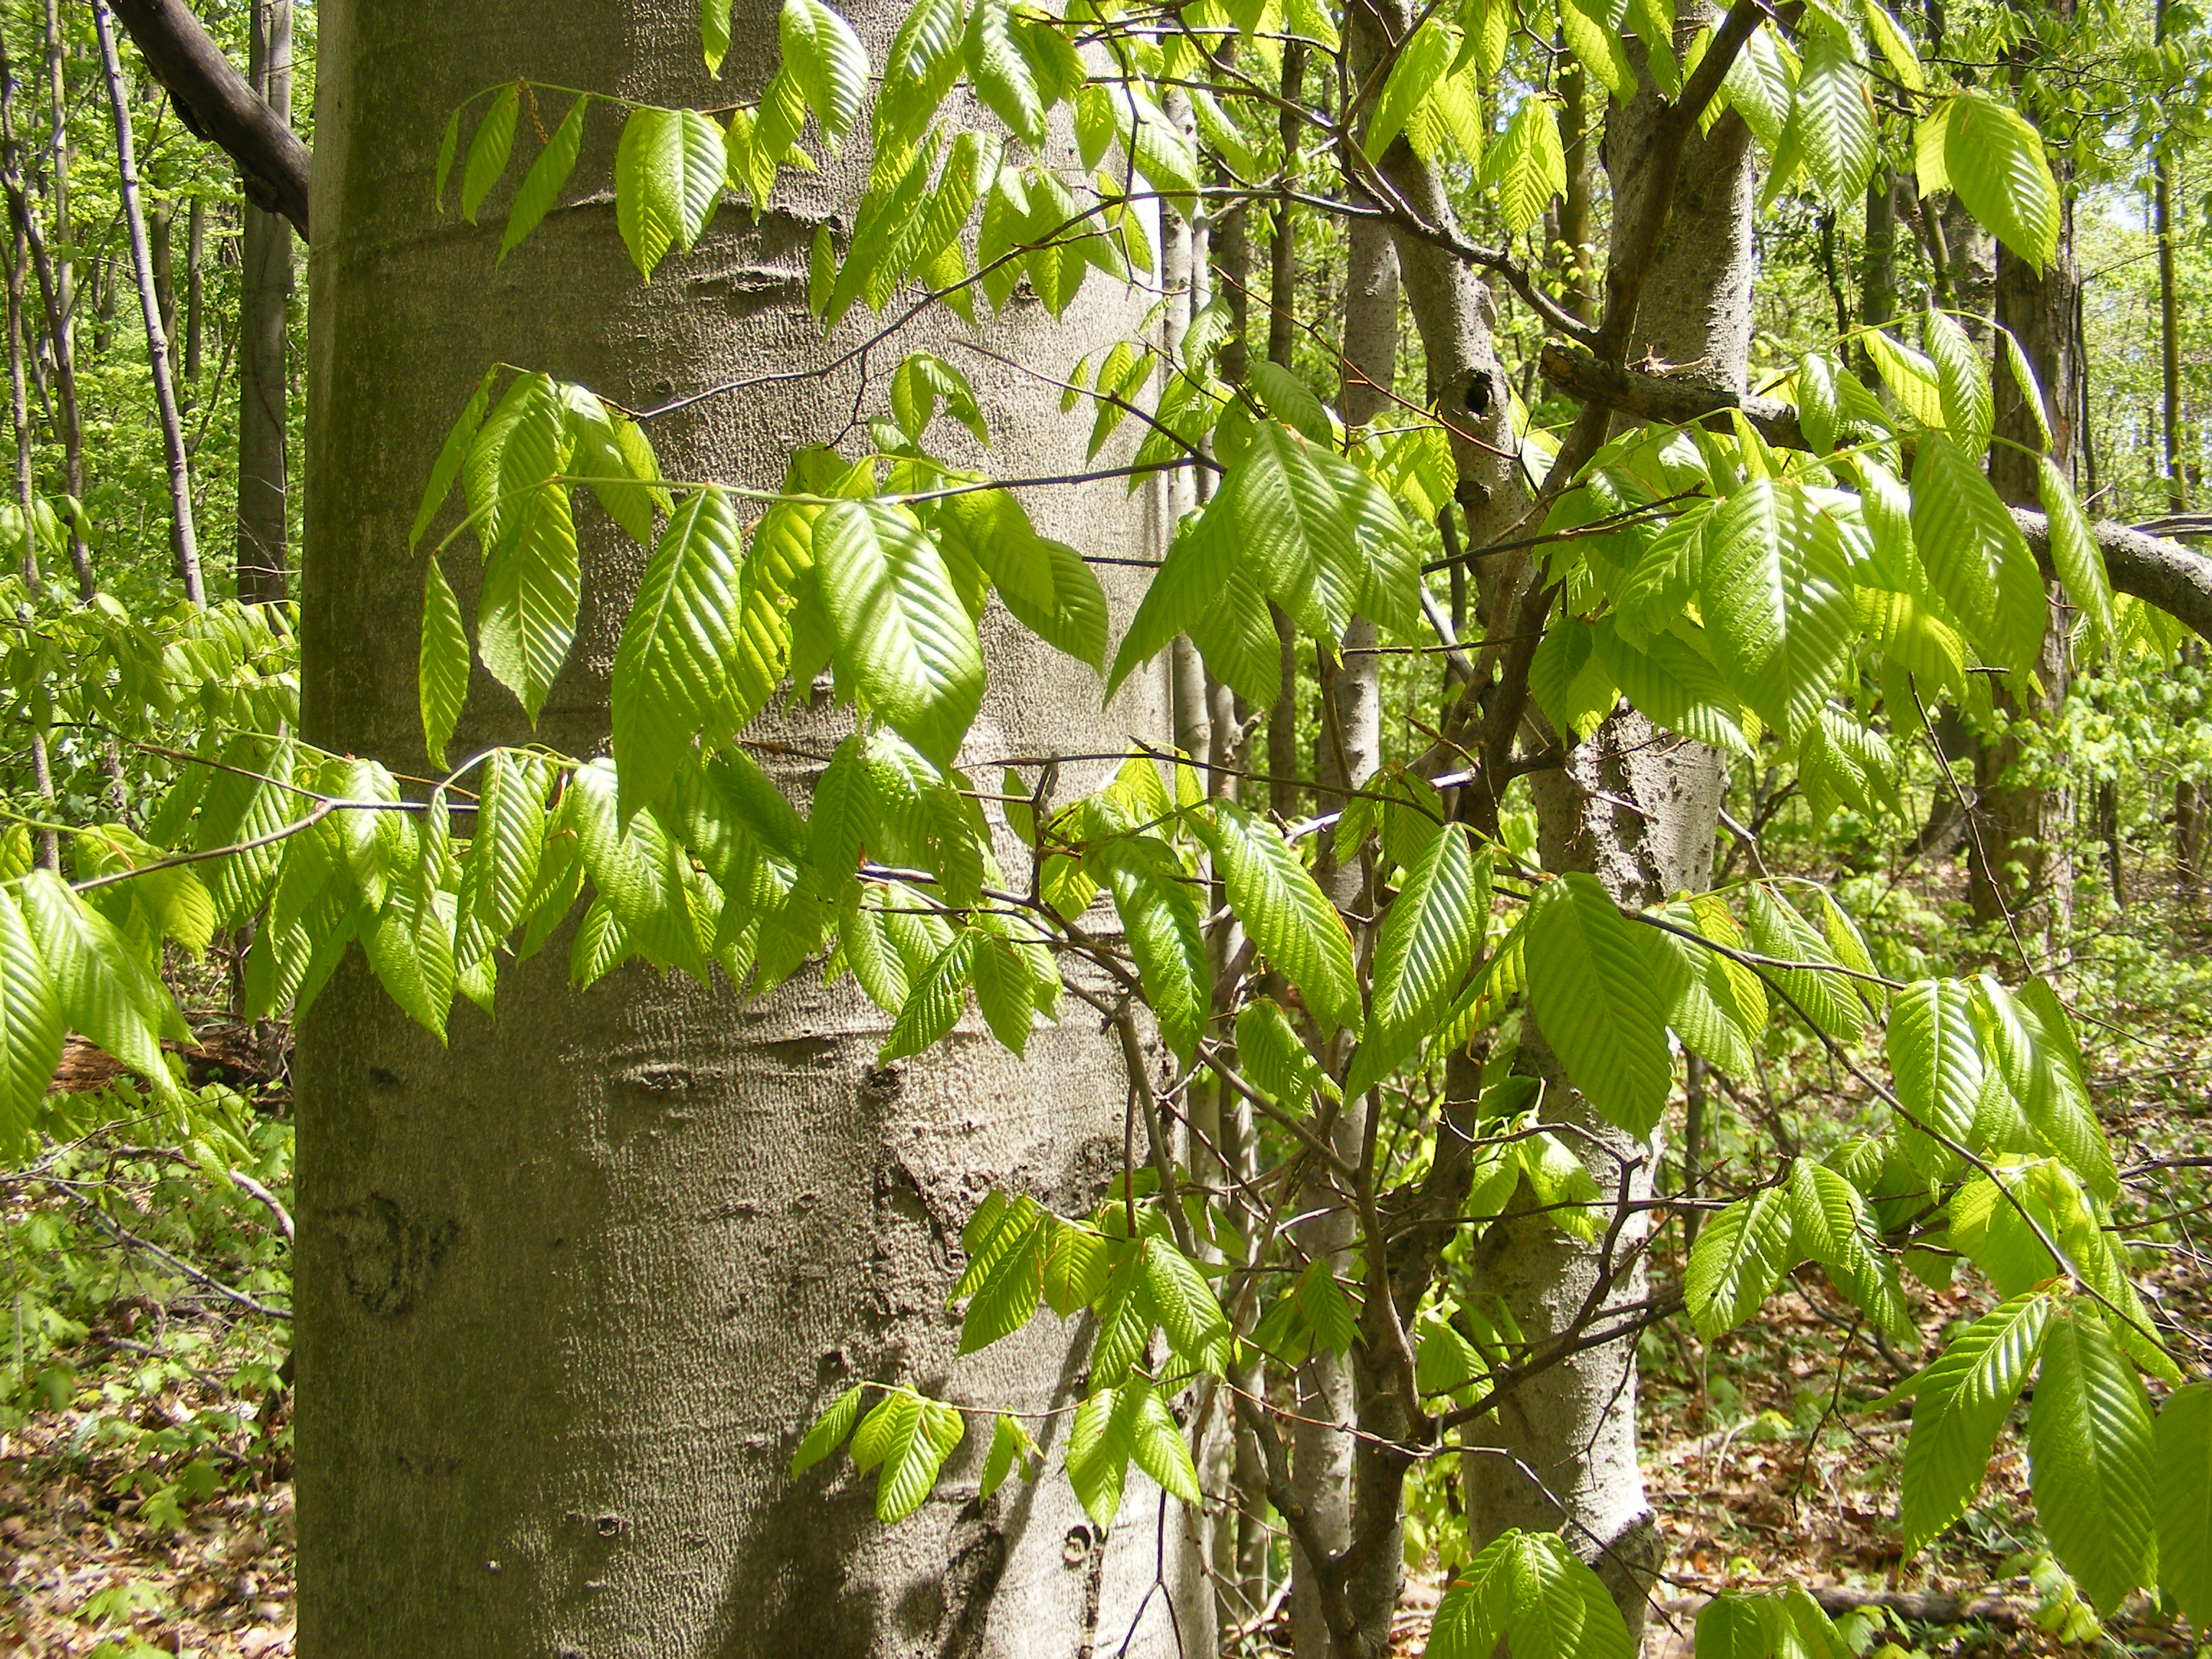 Beech tree Beech Tree: Pictures, Photos, Images, Facts on Beech American beech tree pictures